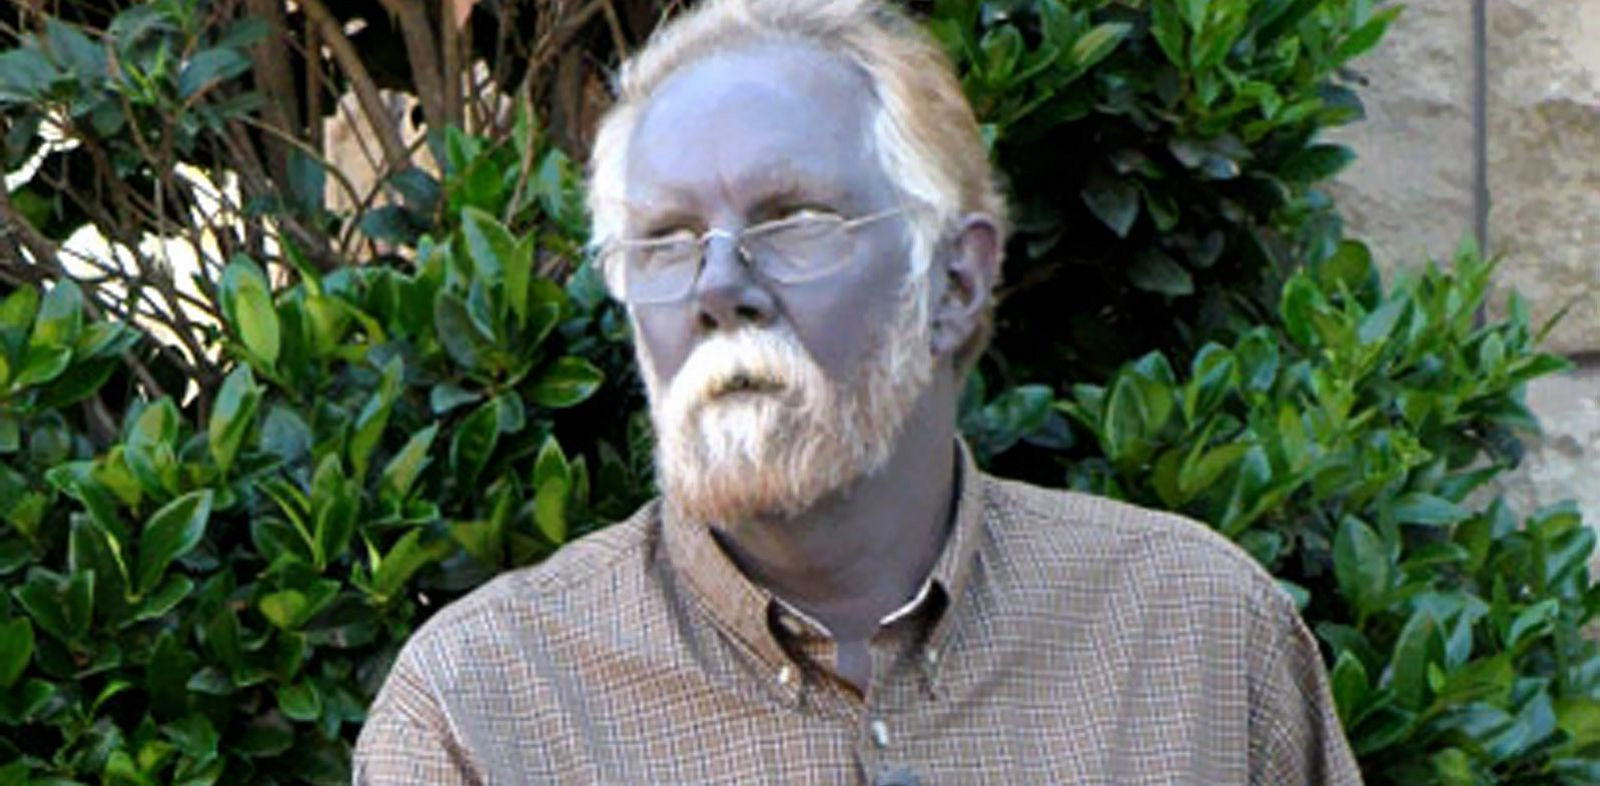 PHOTO: Paul Karasons skin turned blue after he used colloidal silver to ease his ailments.